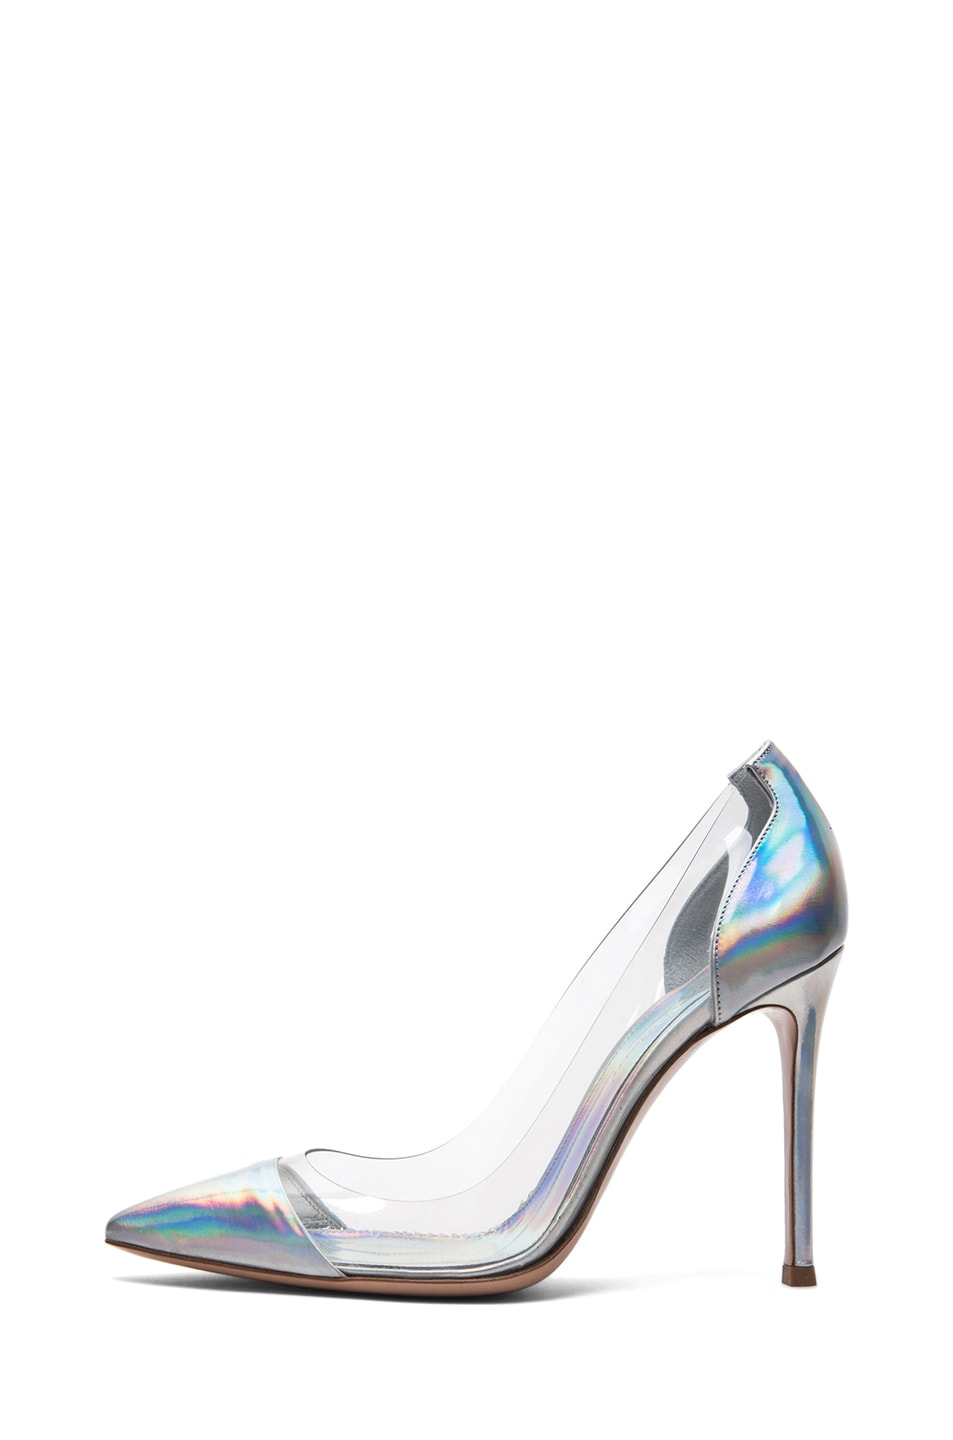 Image 1 of Gianvito Rossi Leather & Plexy Metallic Pumps in Silver